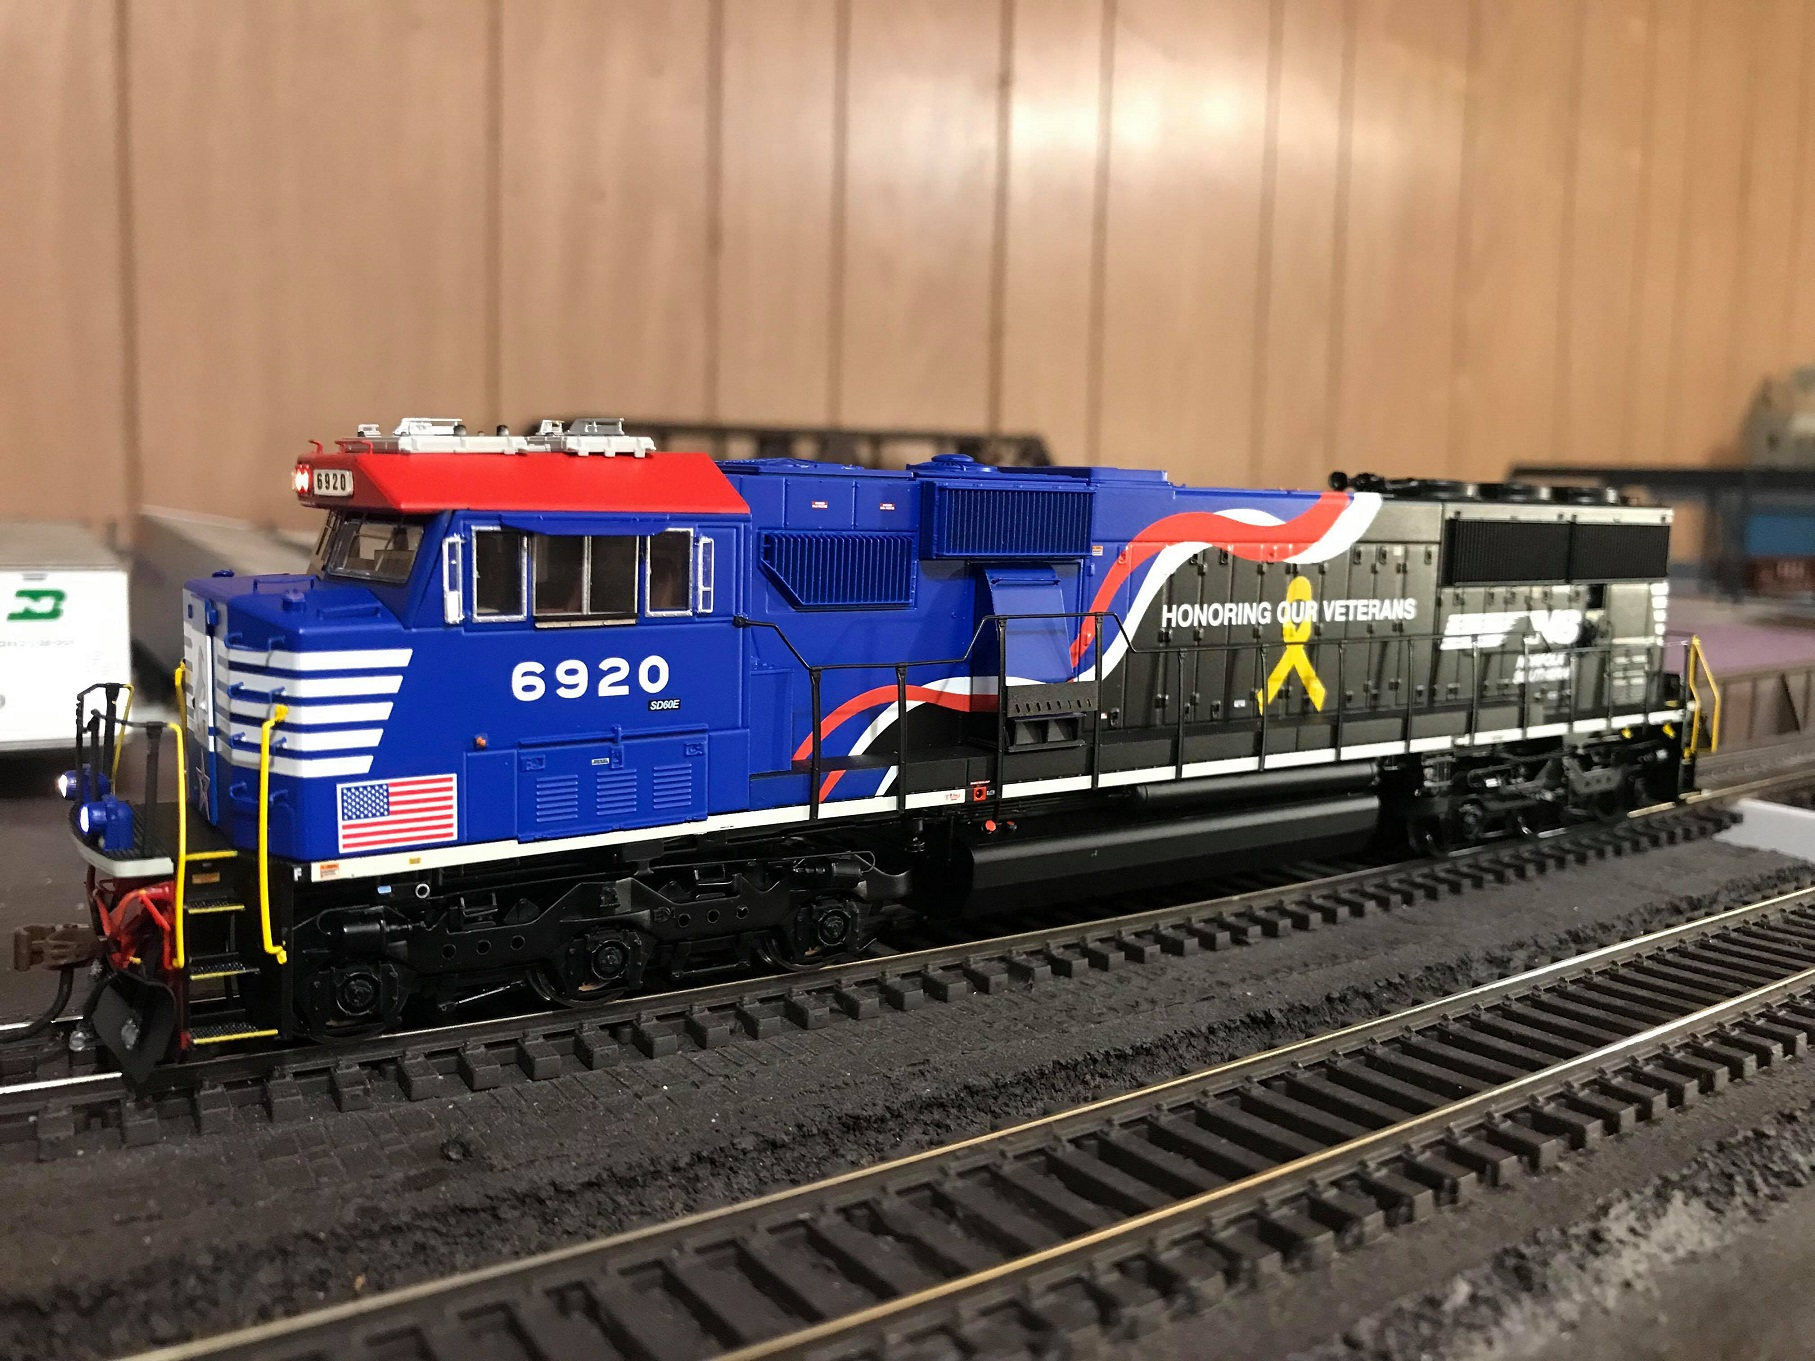 Athearn G65204 HO SD60E DCC Ready Norfolk Southern NS Honor Our Veterans #6920 - LED Lights